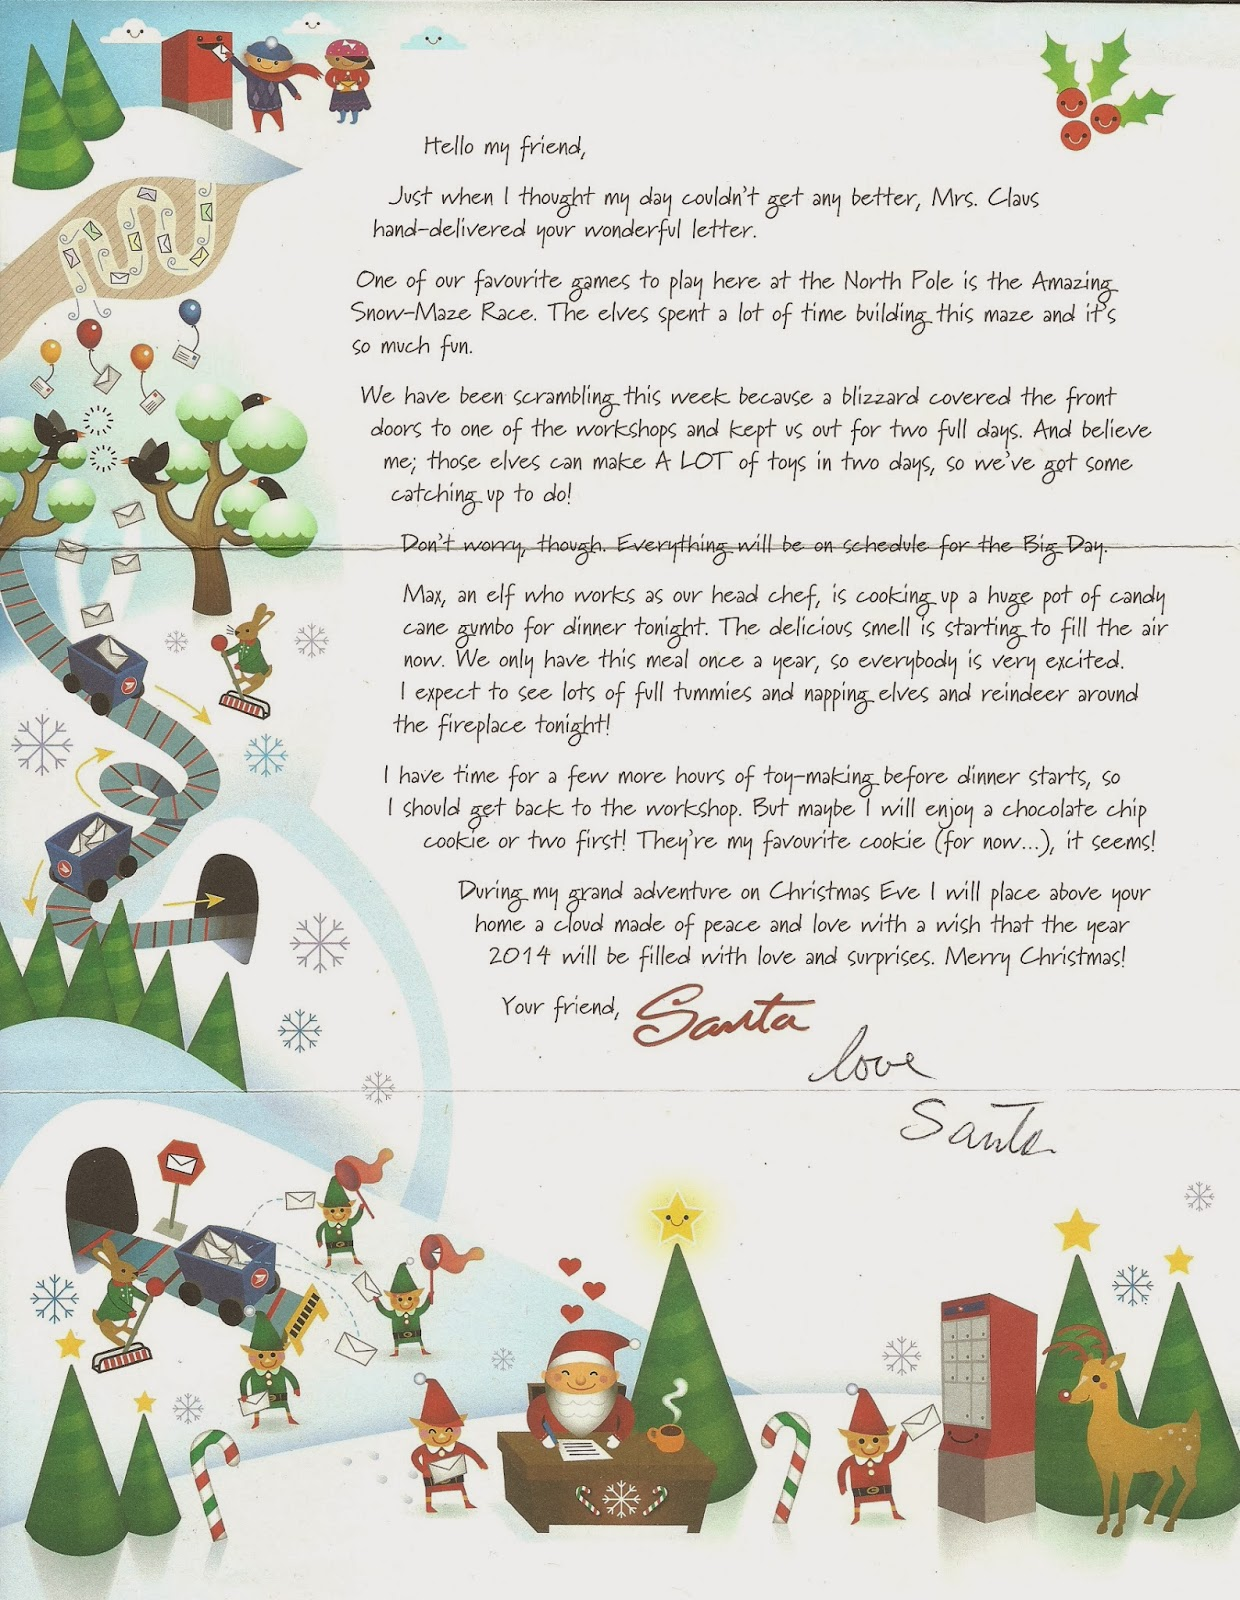 Interesting corner of me christmas 2013 christmas card from santa this is a printed letter from santa claus to tell me how he spends for his christmas spiritdancerdesigns Images